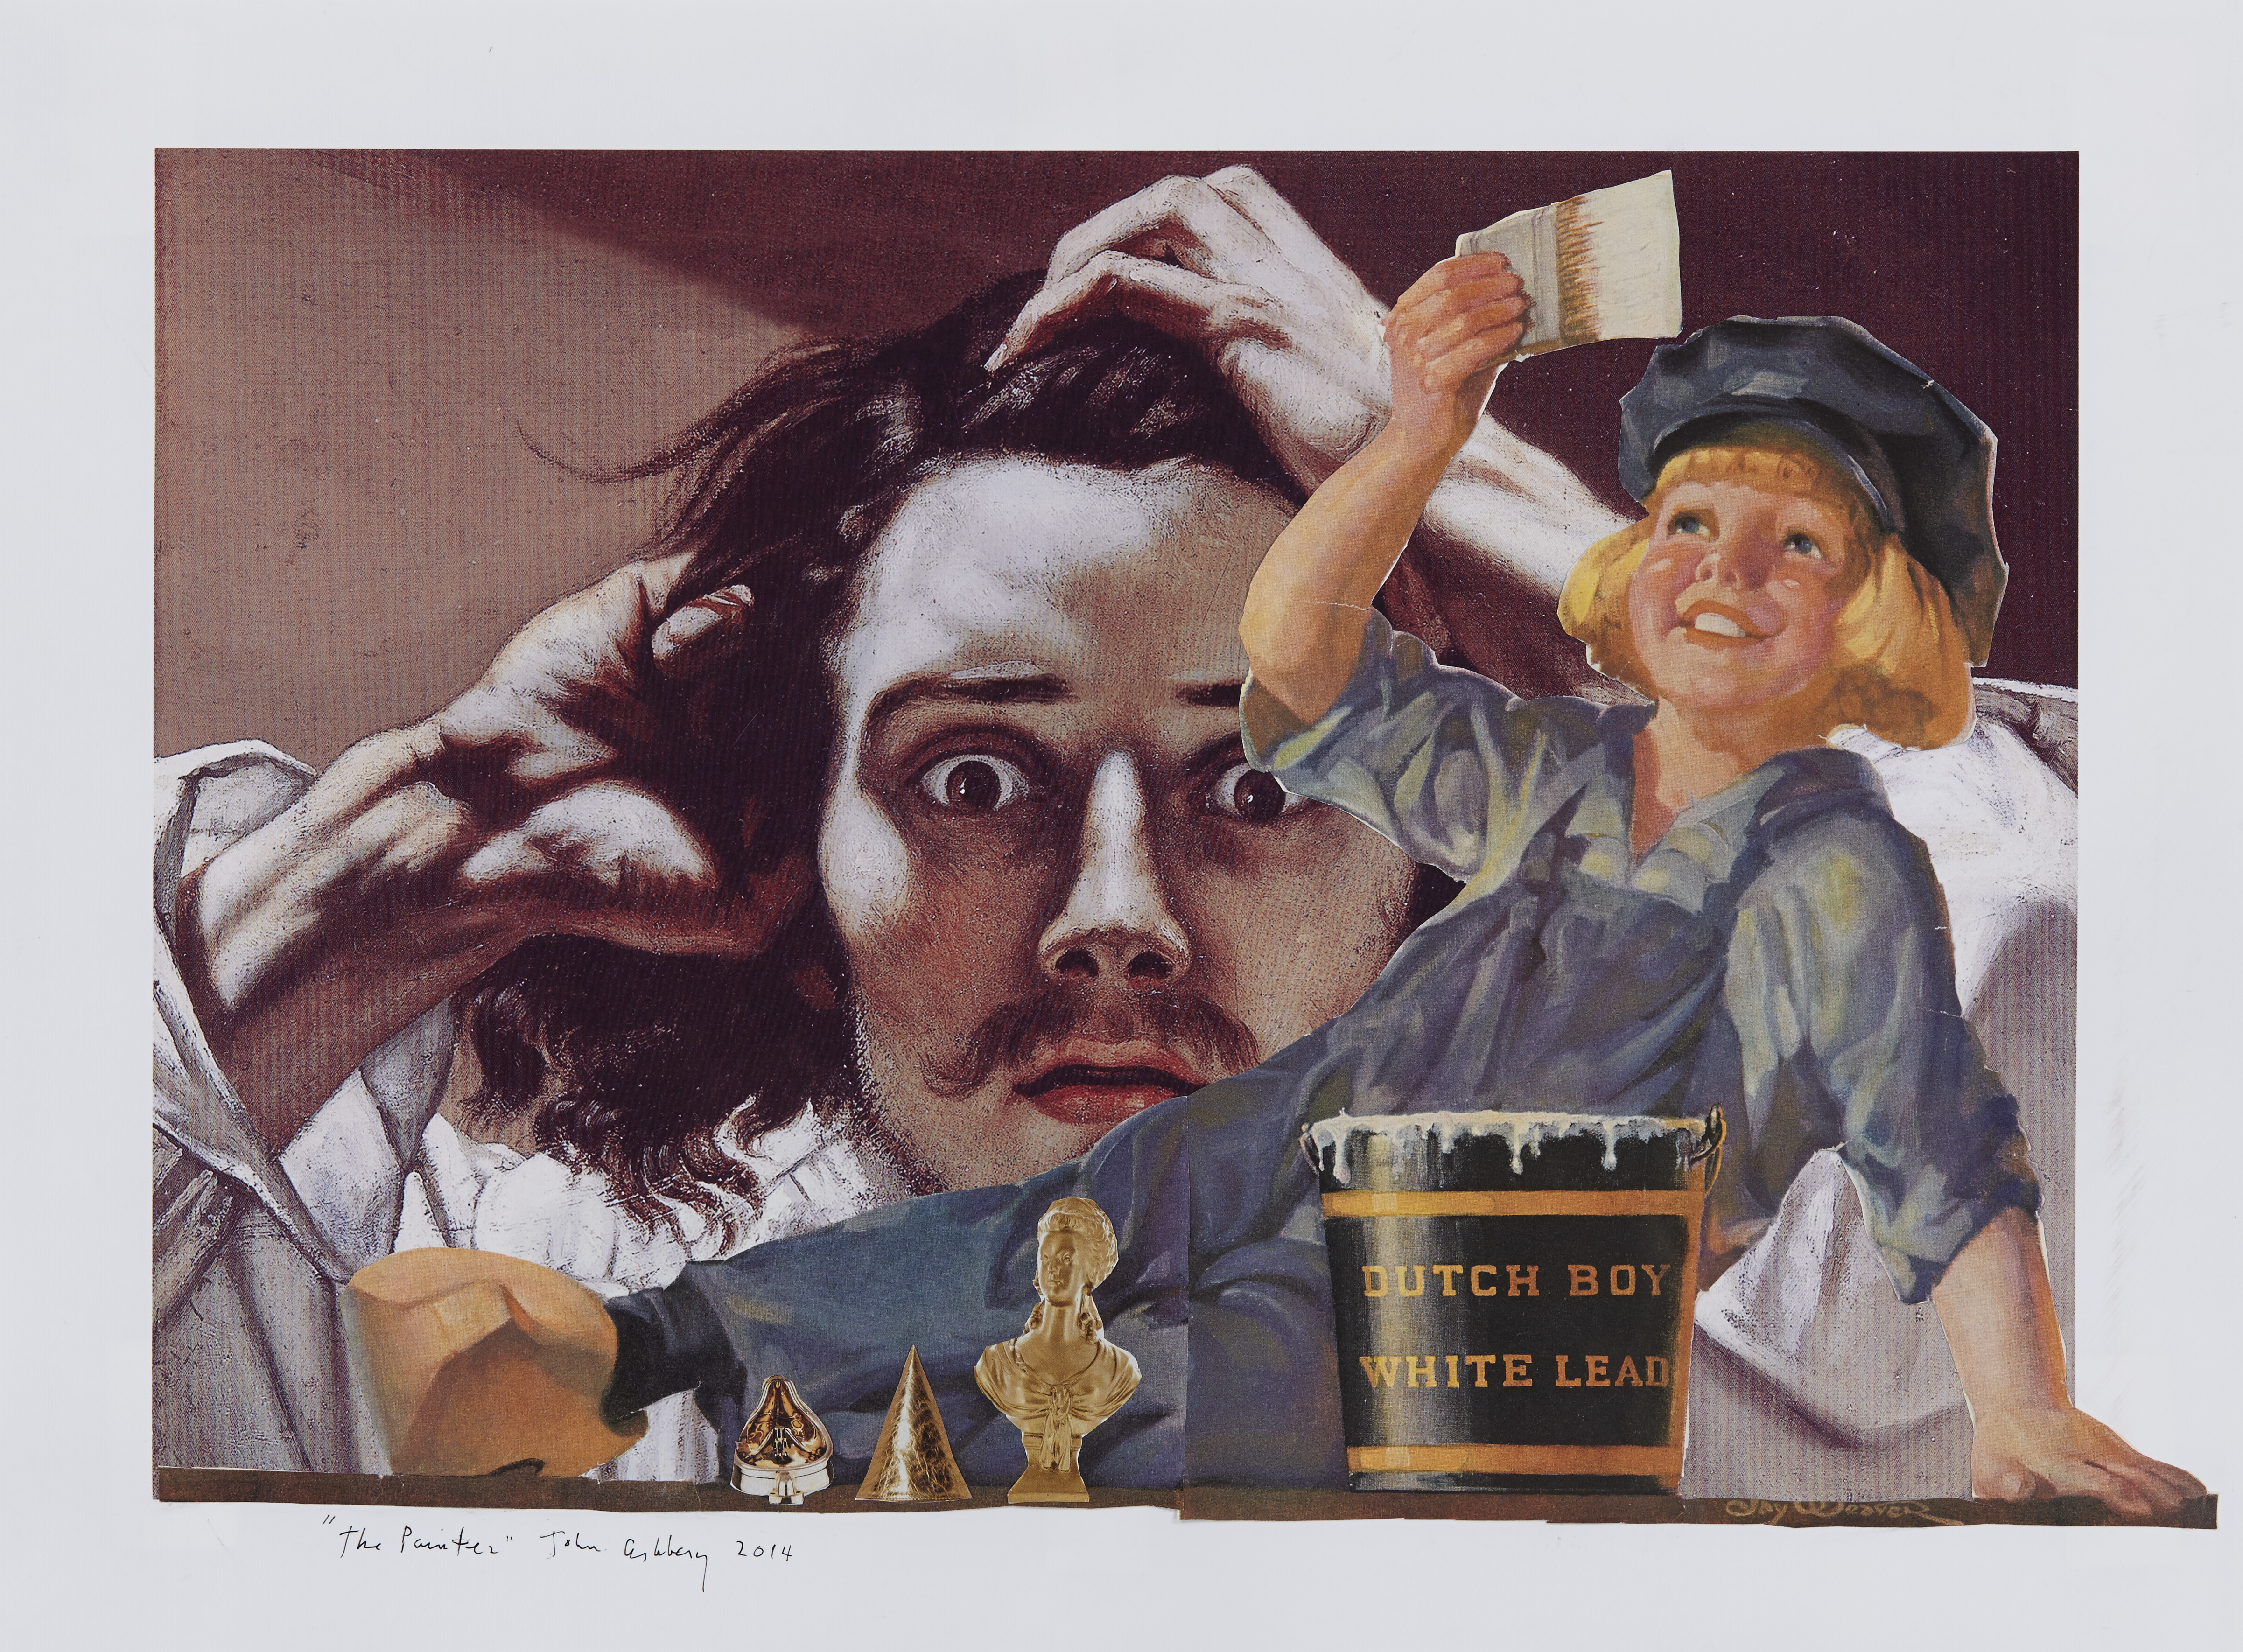 Ashbery_The Painter_2014_collage_15x20.5in_300dpi